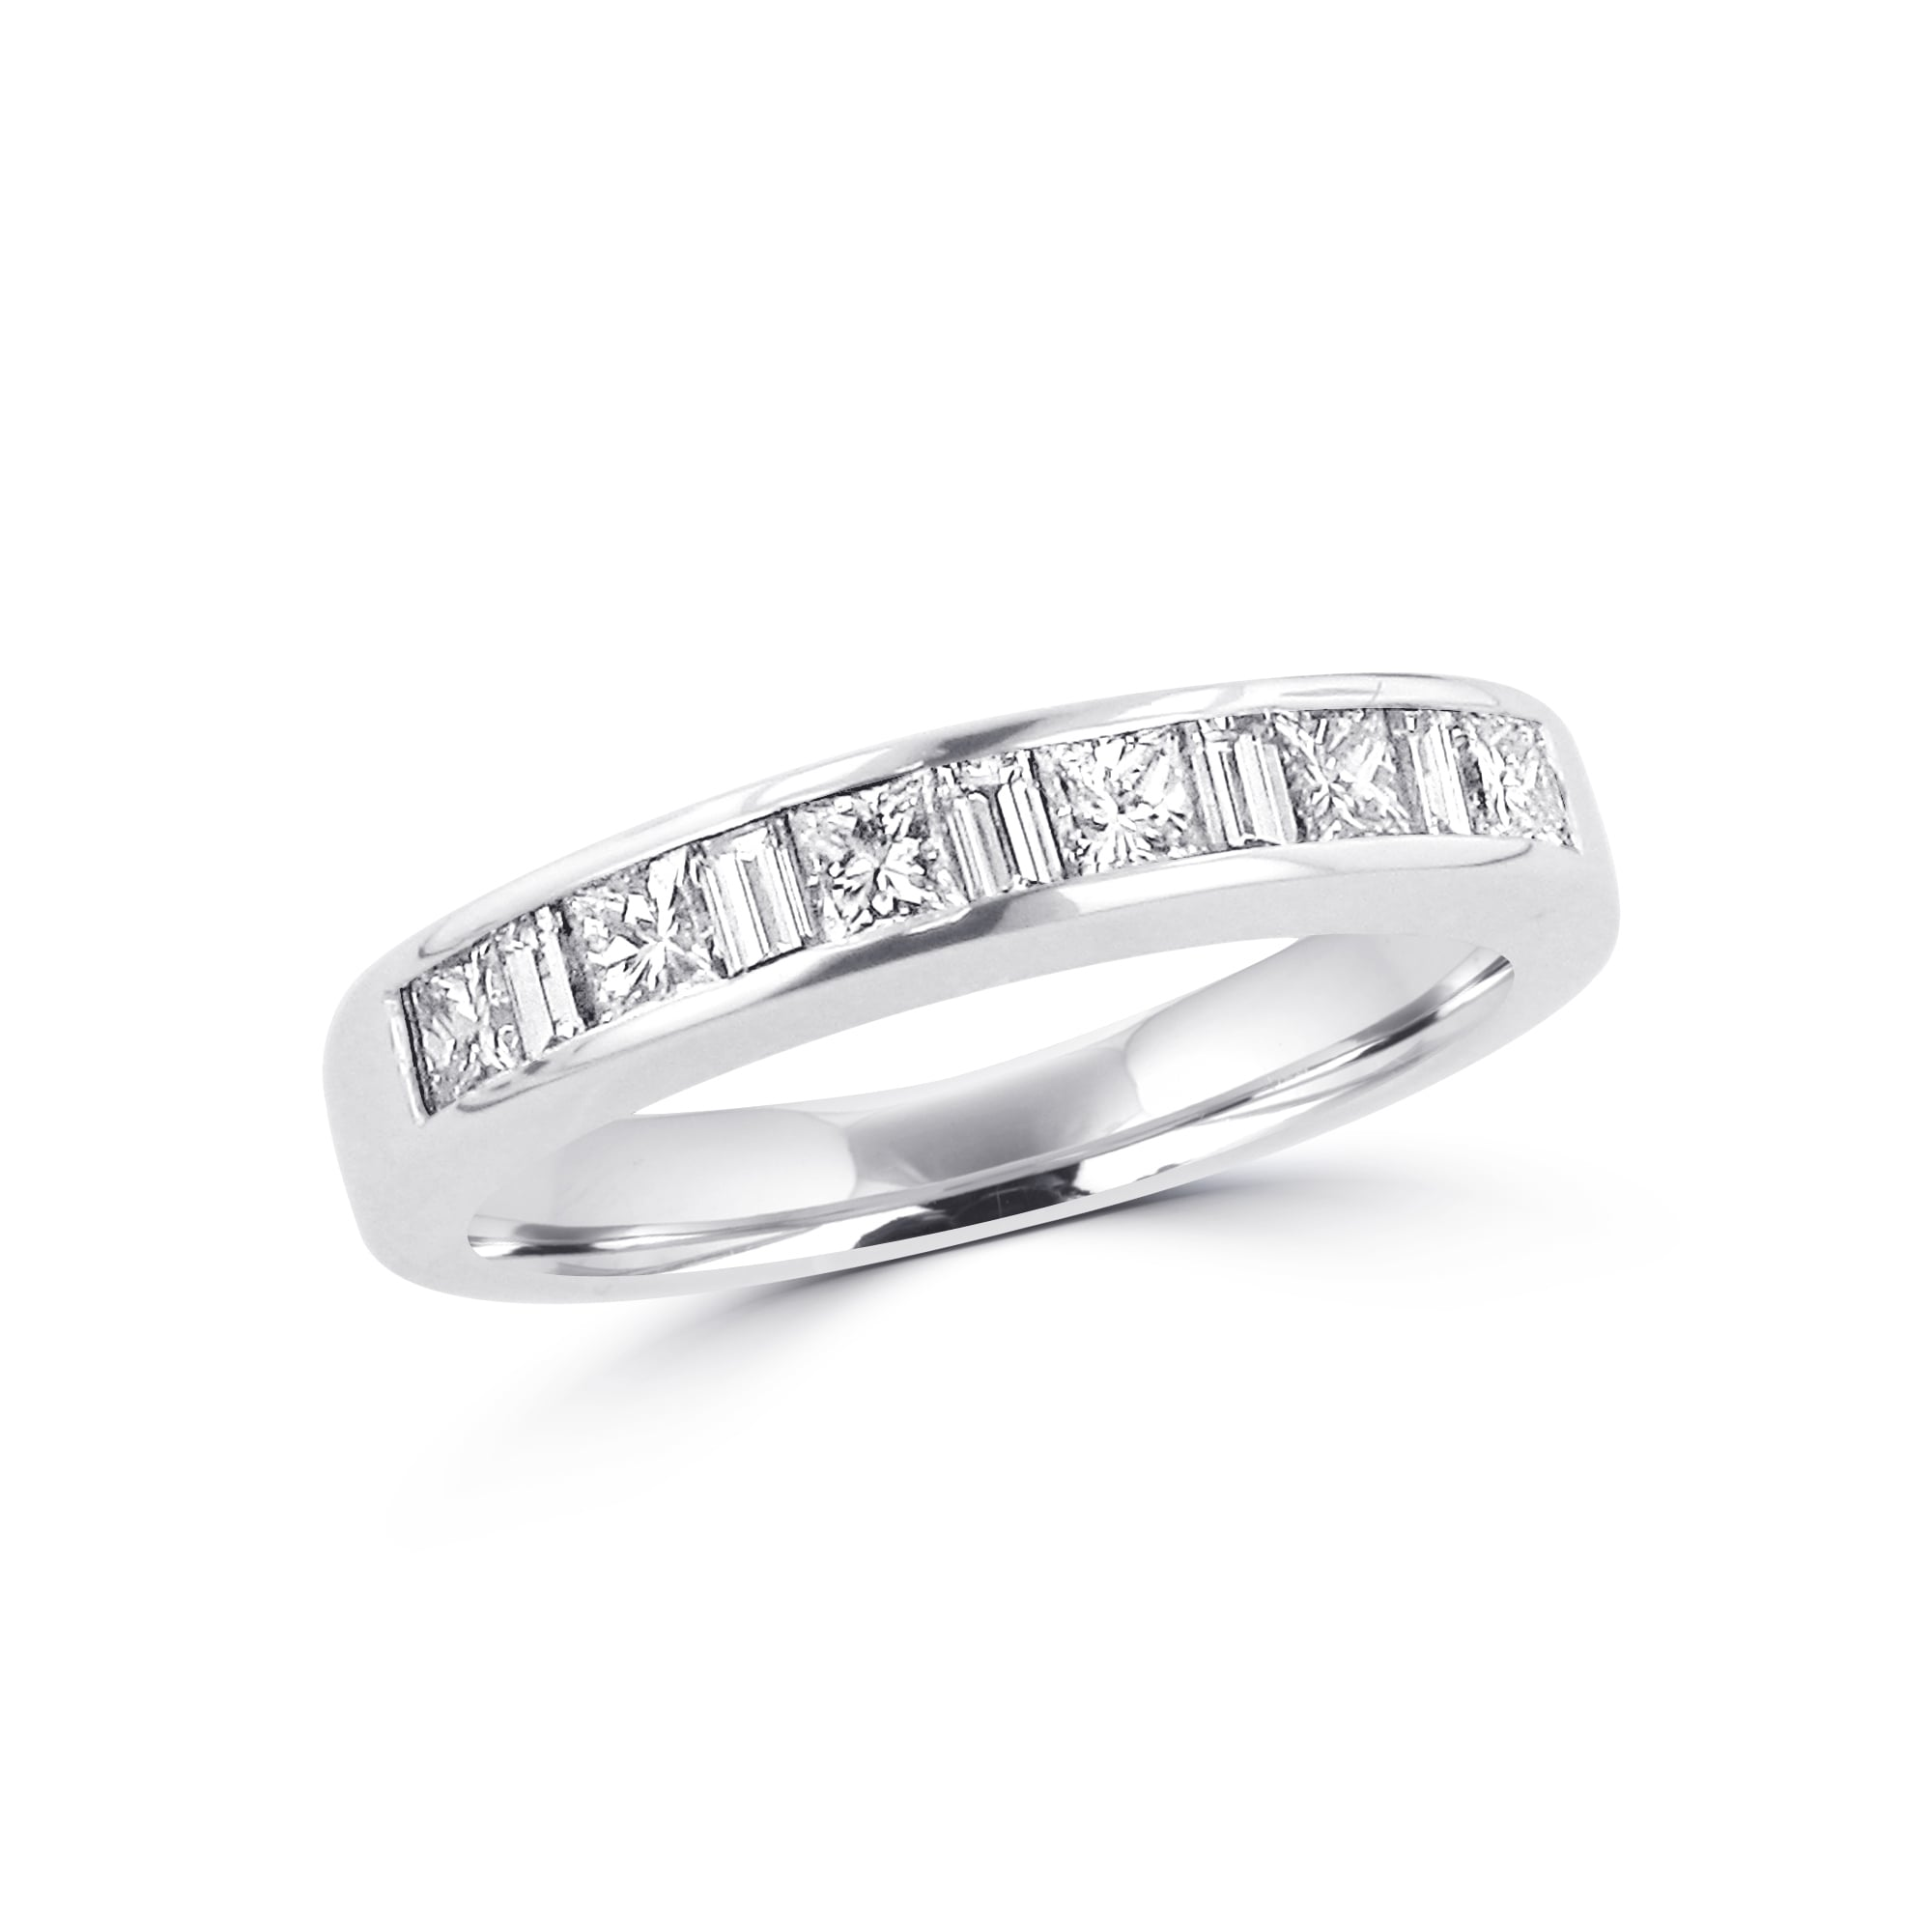 6f585df9de09be 18ct White Gold Princess and Baguette Diamond Eternity Ring 0.82ct Total  RWT36390